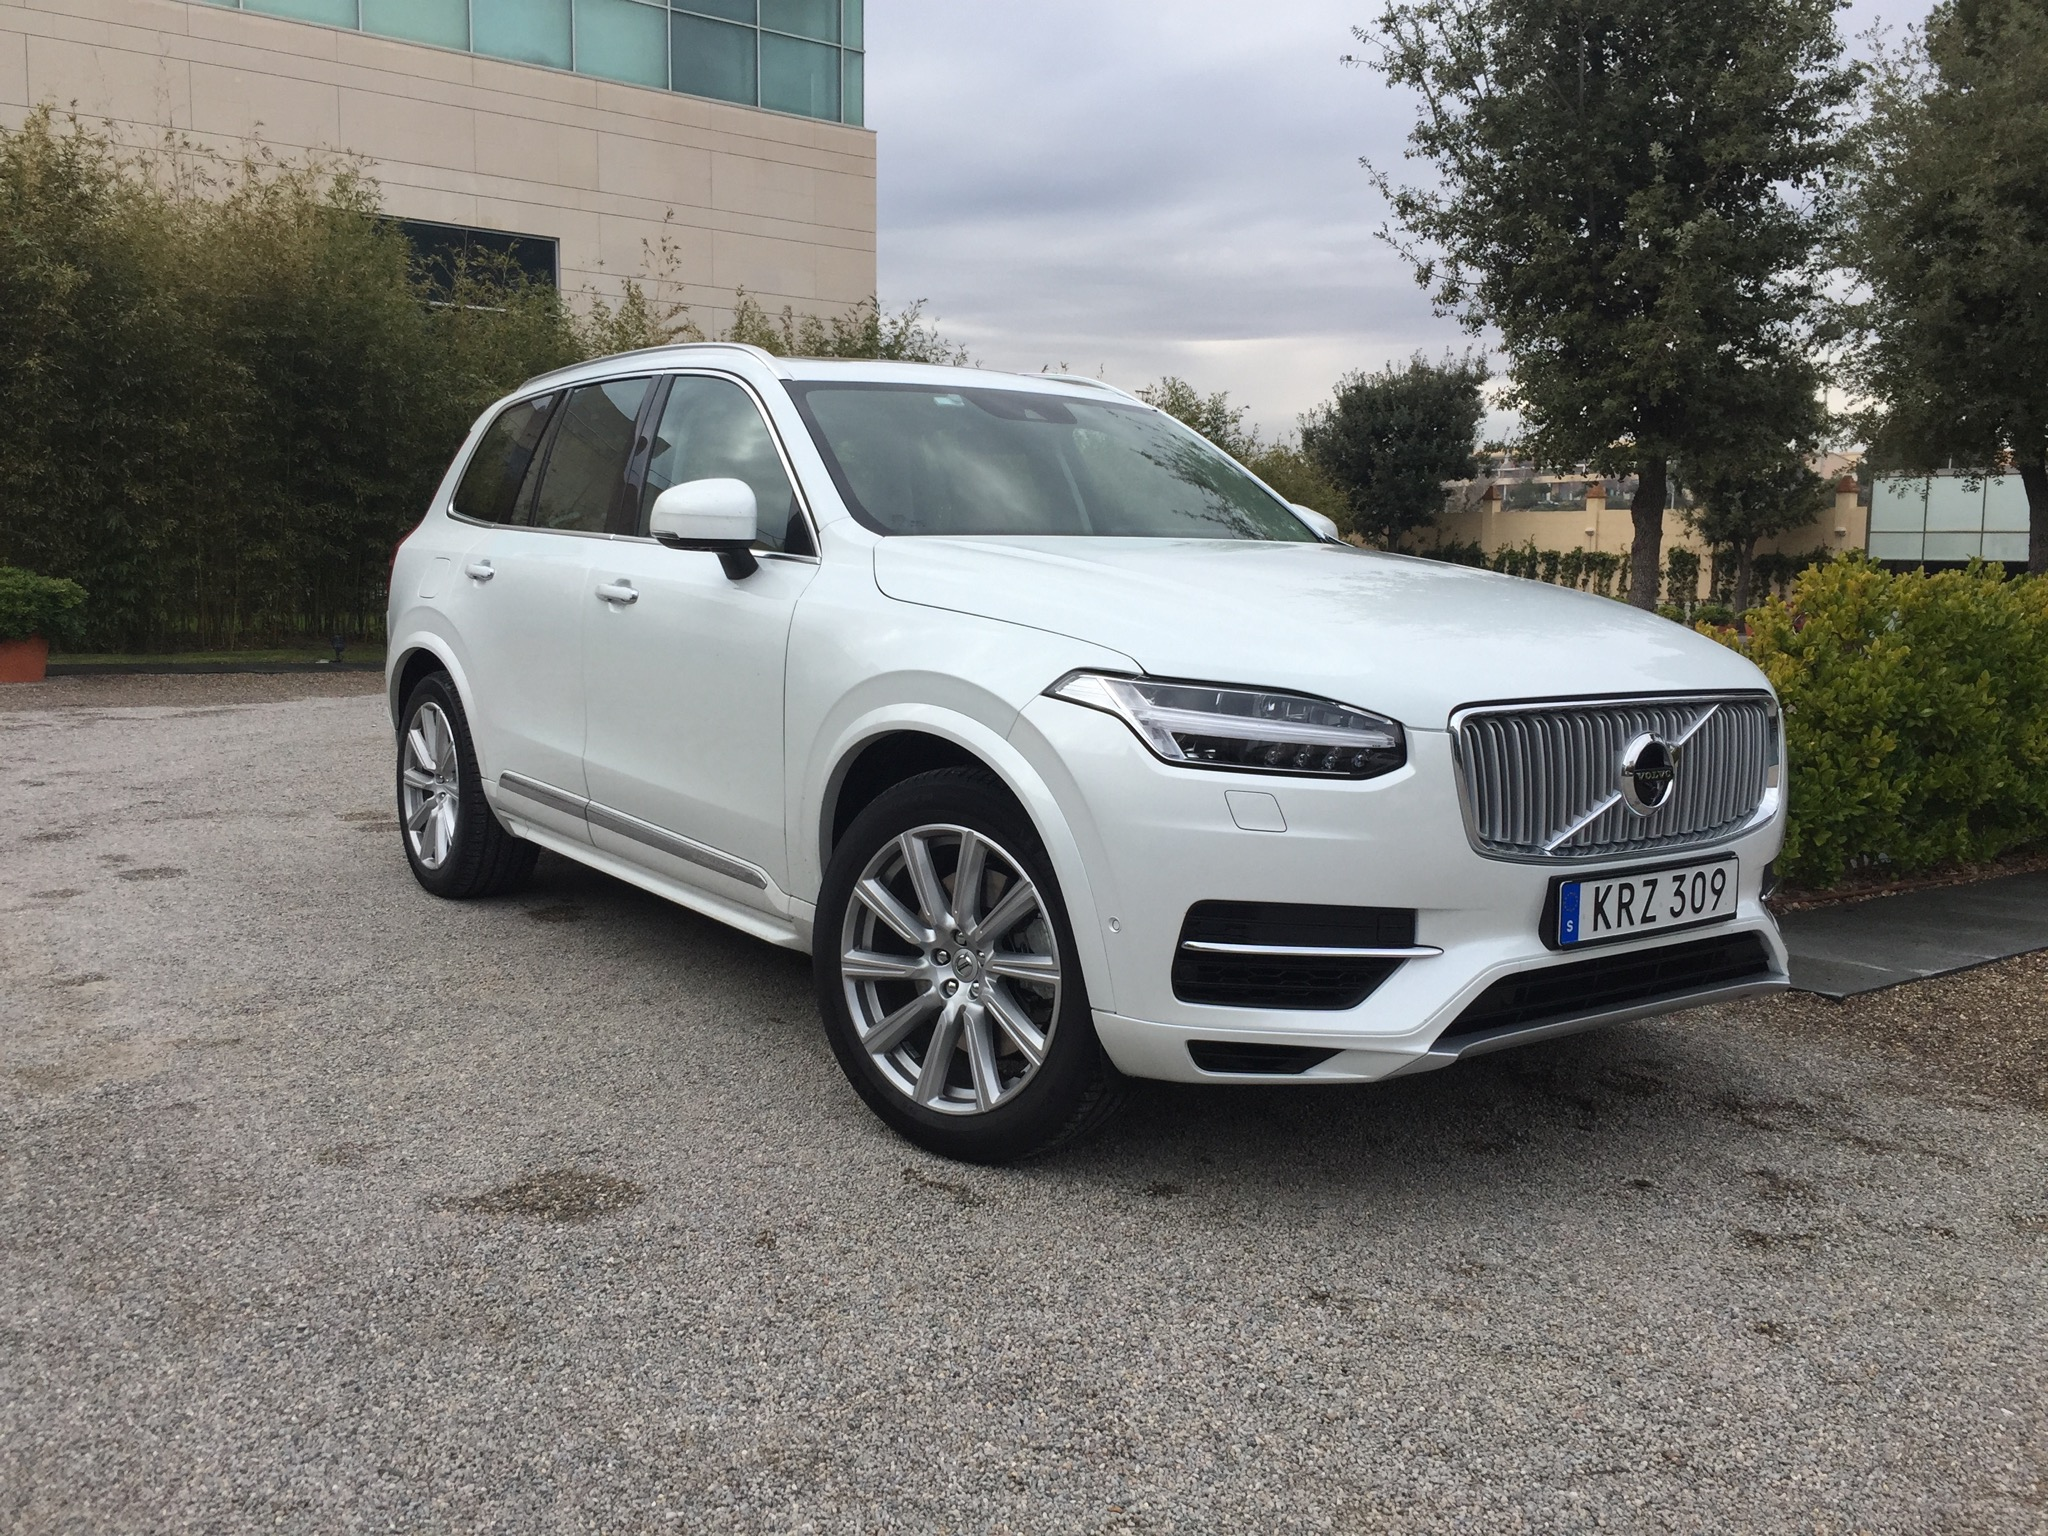 Volvo Xc90 2015 2015 Volvo Xc90 Revealed In Leaked Images